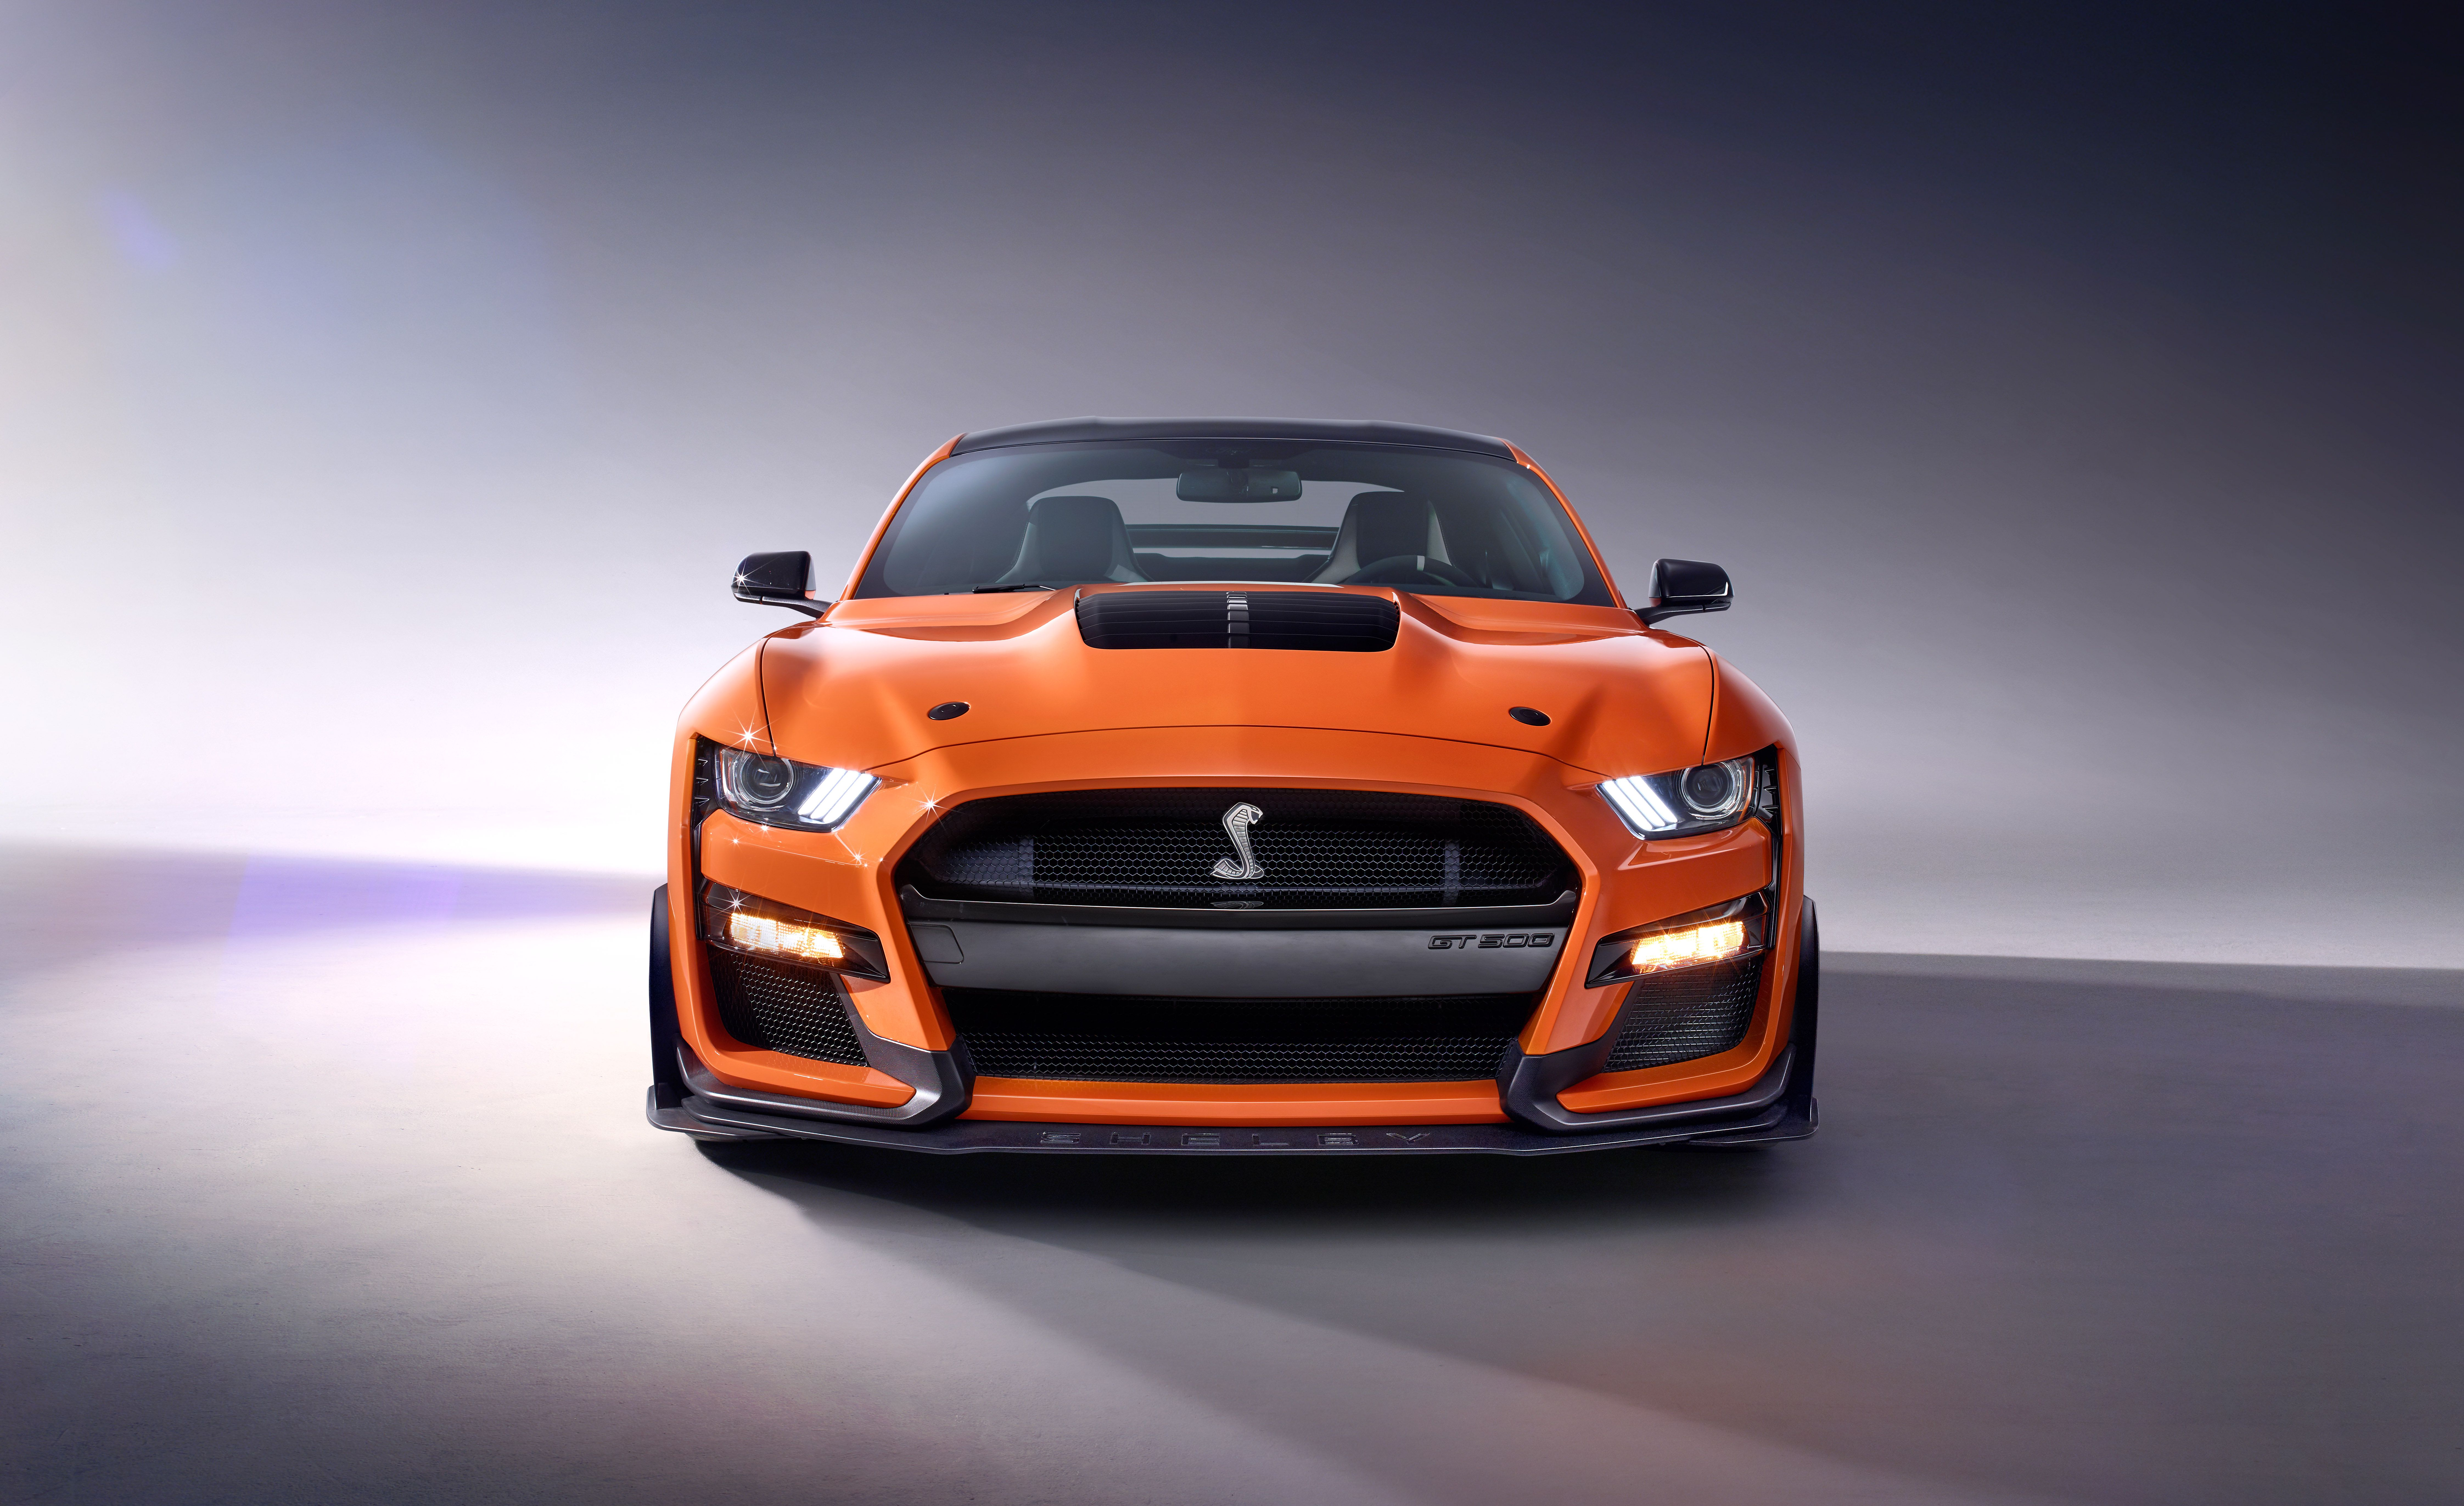 2020 Ford Mustang Shelby Gt500 Front 5k Hd Cars 4k